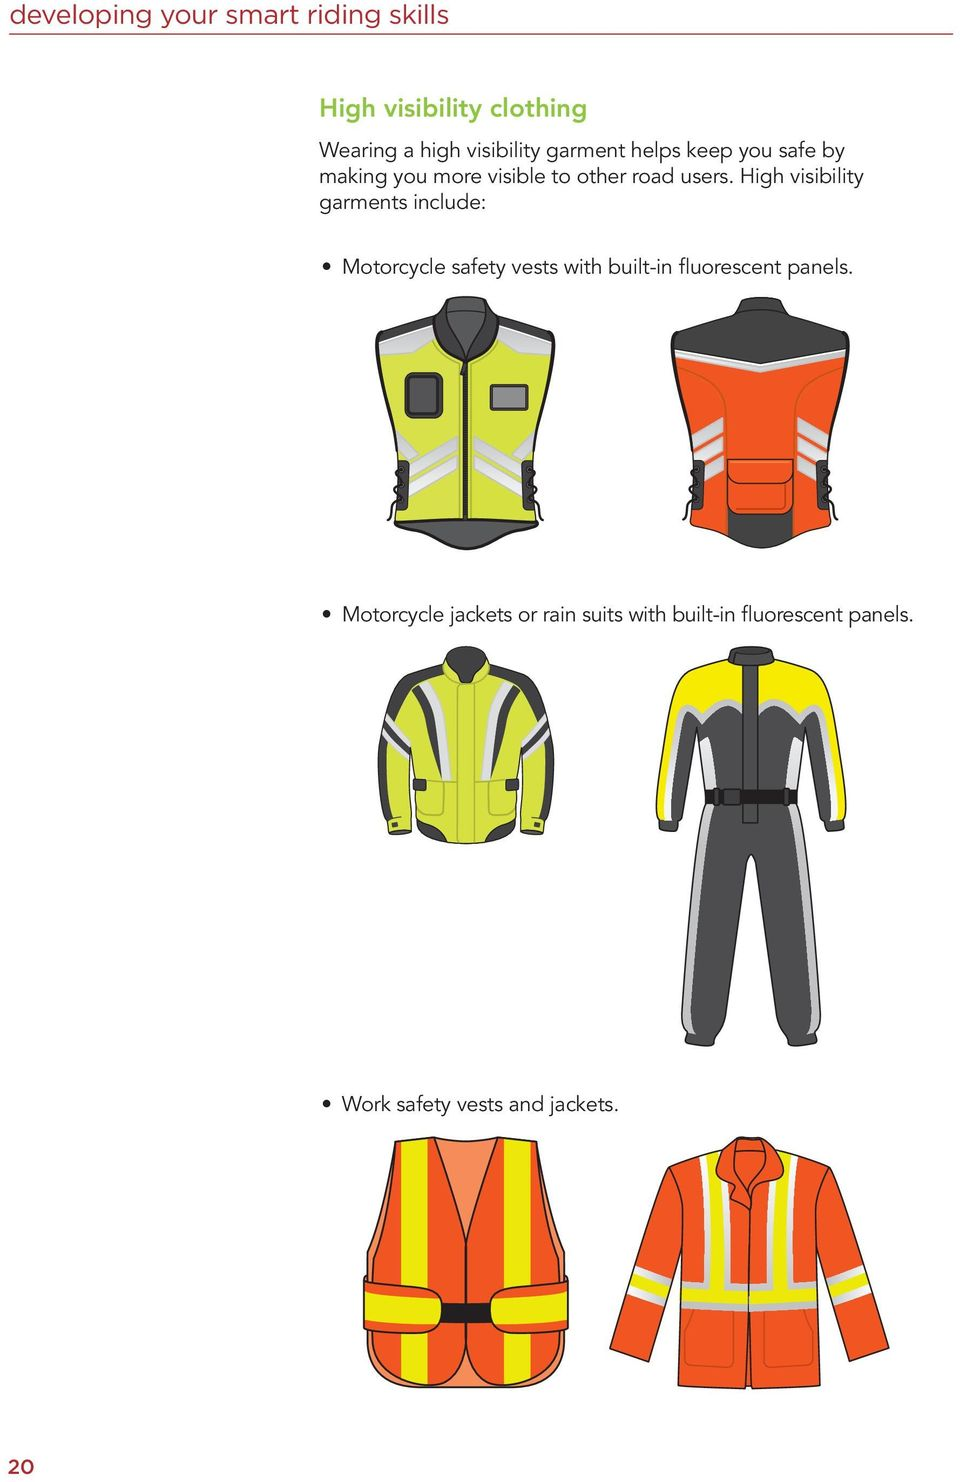 High visibility garments include: Motorcycle safety vests with built-in fluorescent